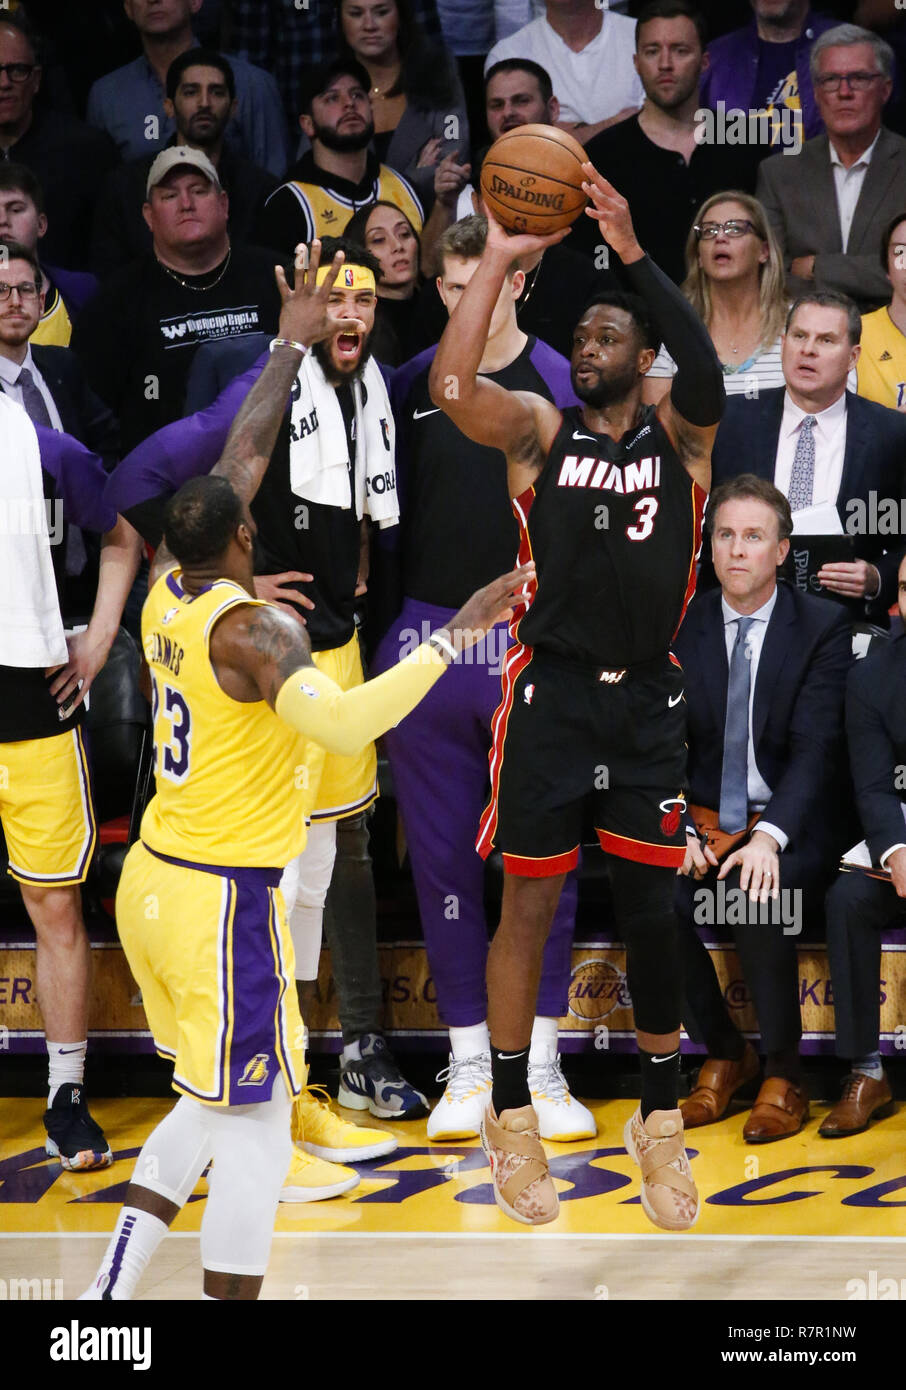 0af20dbc7083 Miami Heat s Dwyane Wade (3) shoots over Los Angeles Lakers  LeBron James  (23) in an NBA basketball game between Los Angeles Lakers and Miami Heat  Monday ...